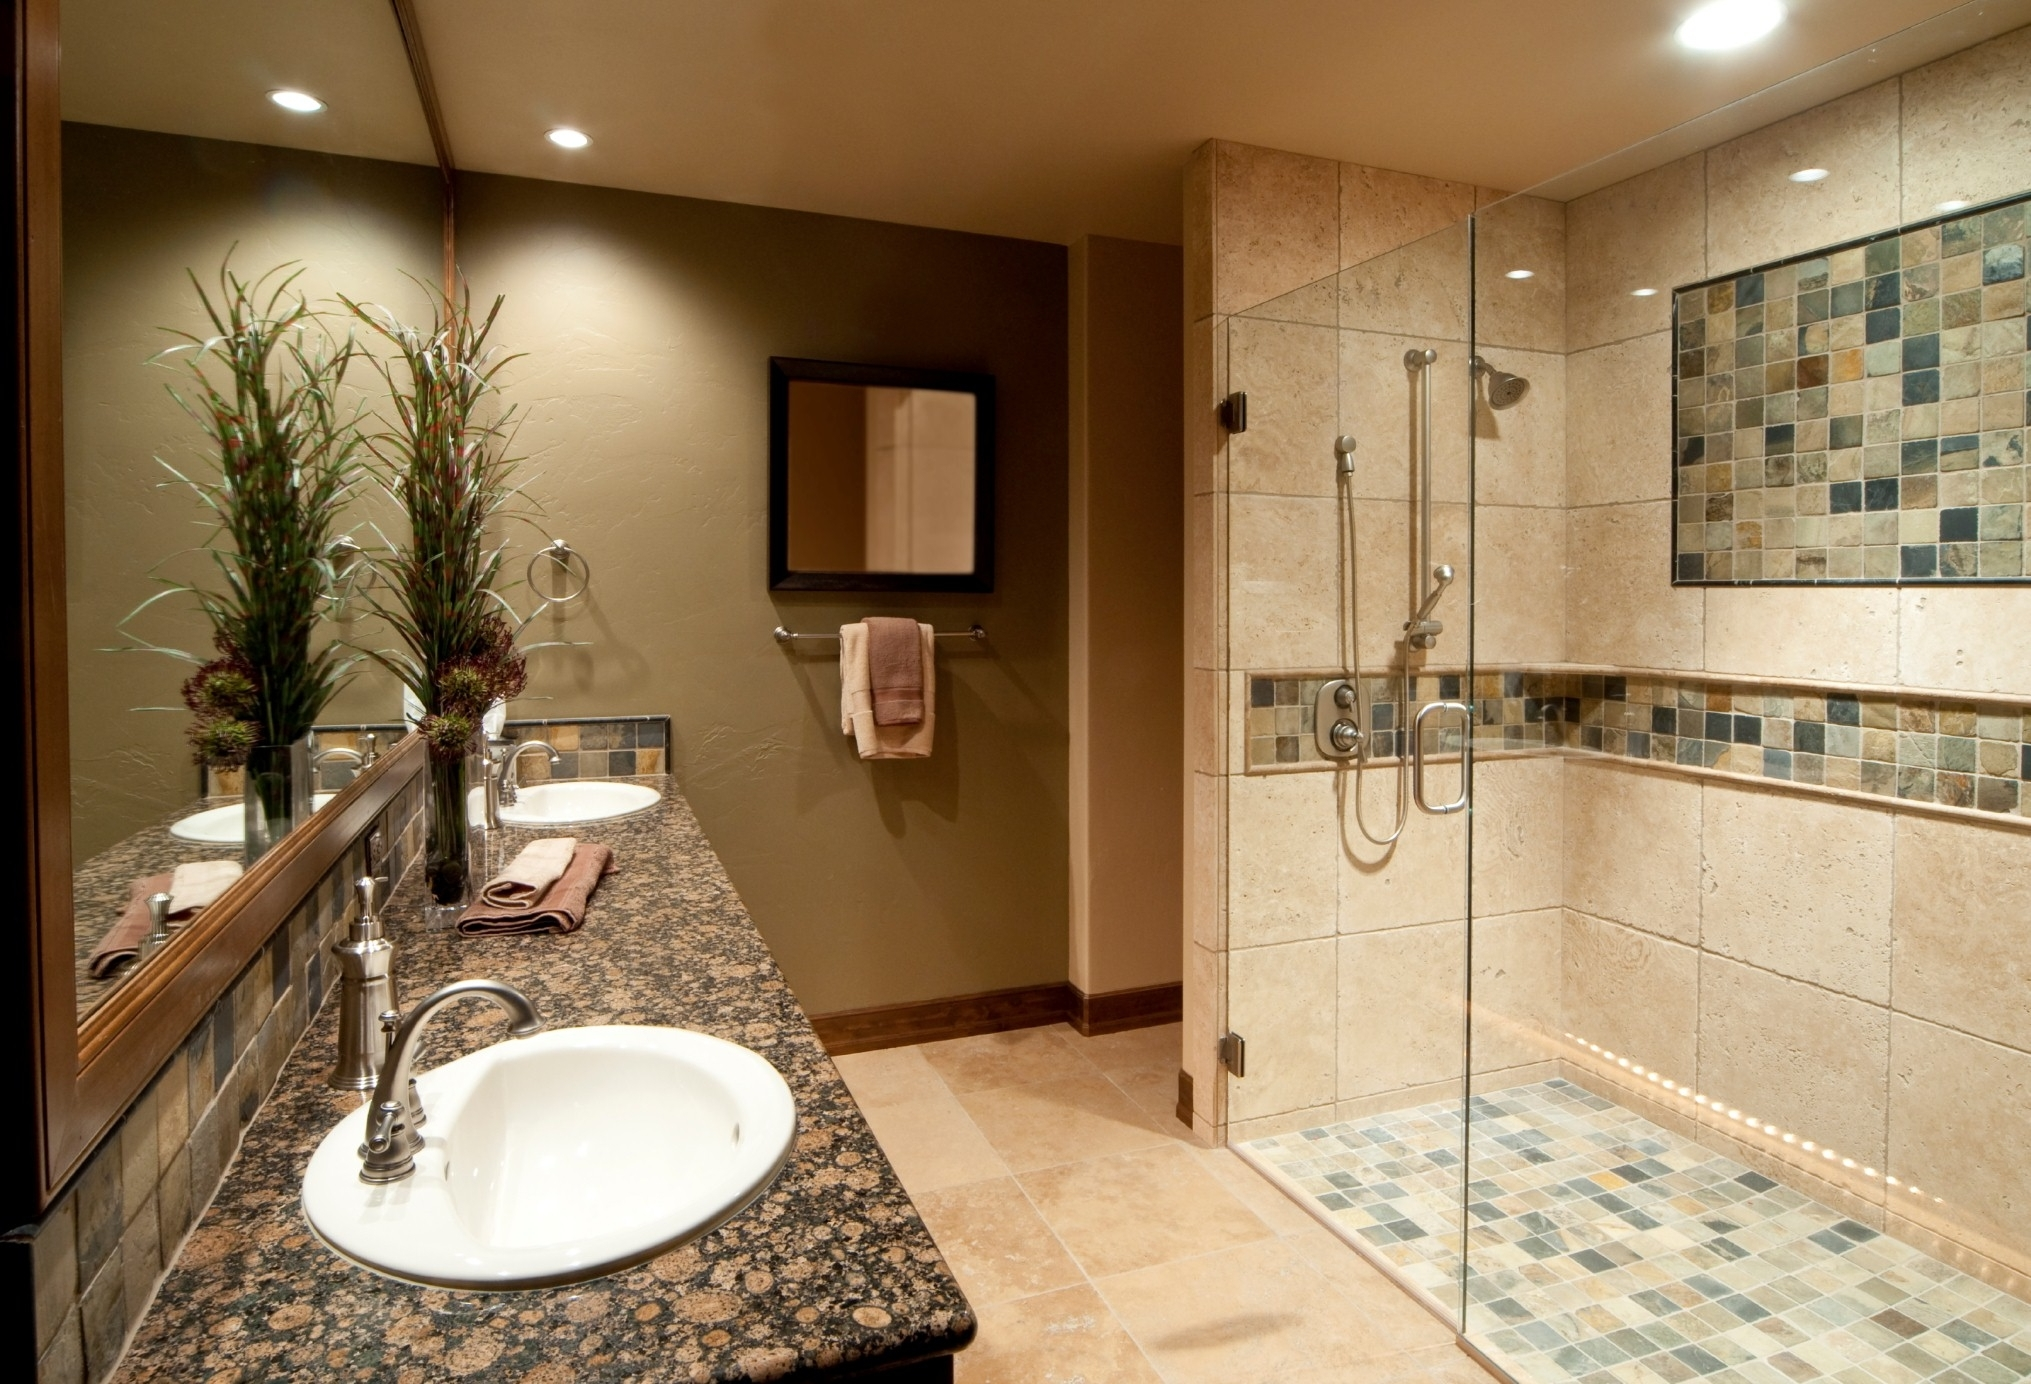 Stylish Bathroom Renovation Ideas Pictures With Various Examples Of Best Decoration Of Bathroom To The Inspiration Design Ideas (View 22 of 23)